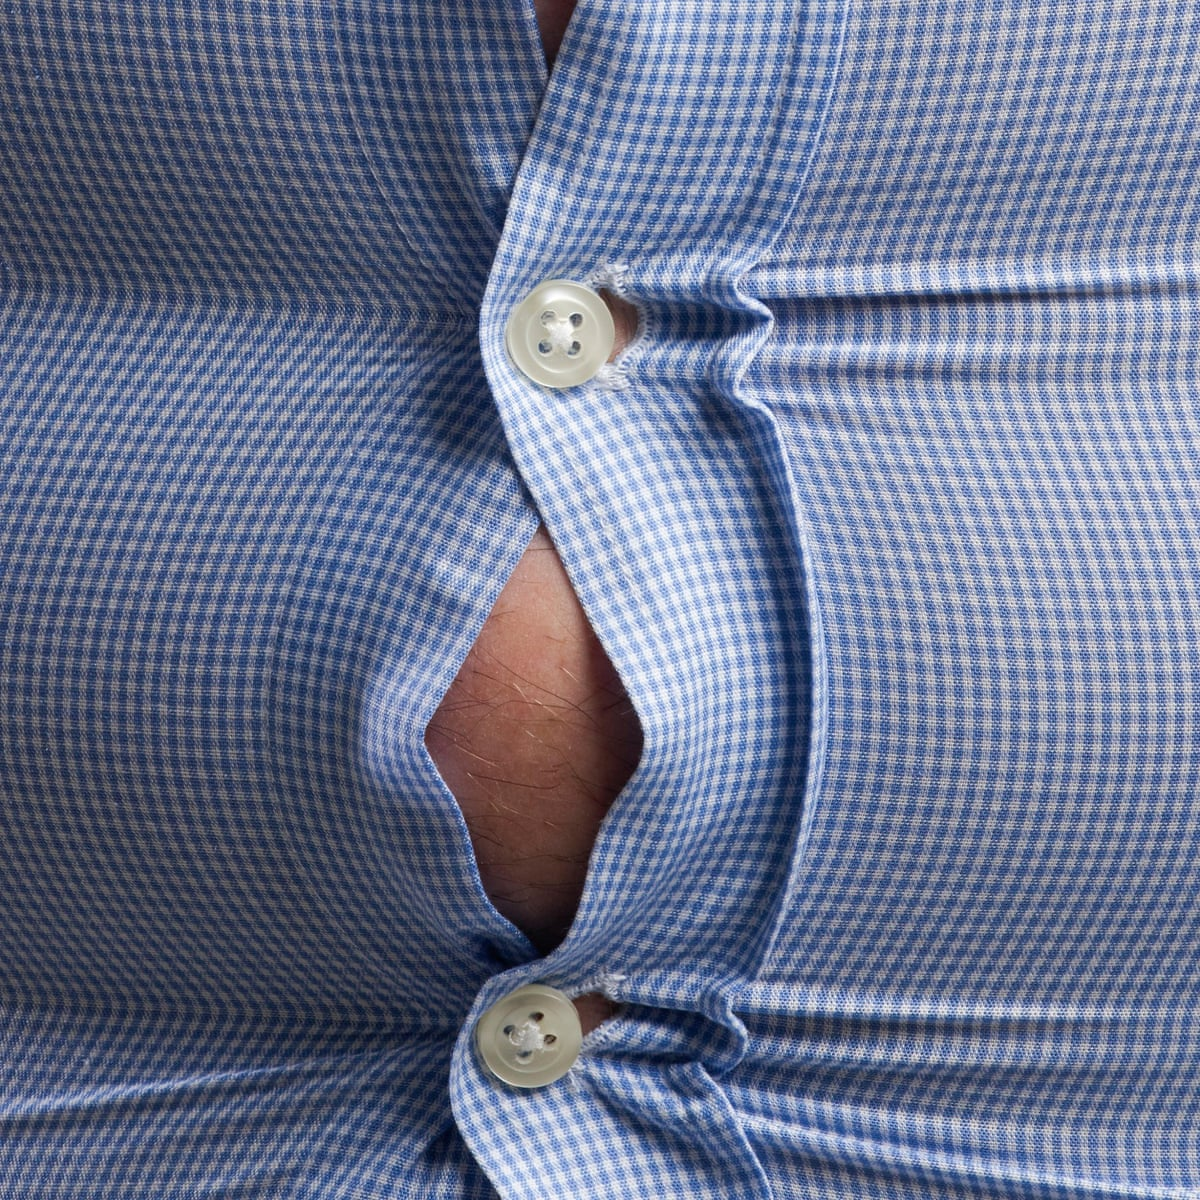 I Lost 13 Stone Now I Know The Truth About Obesity Obesity The Guardian